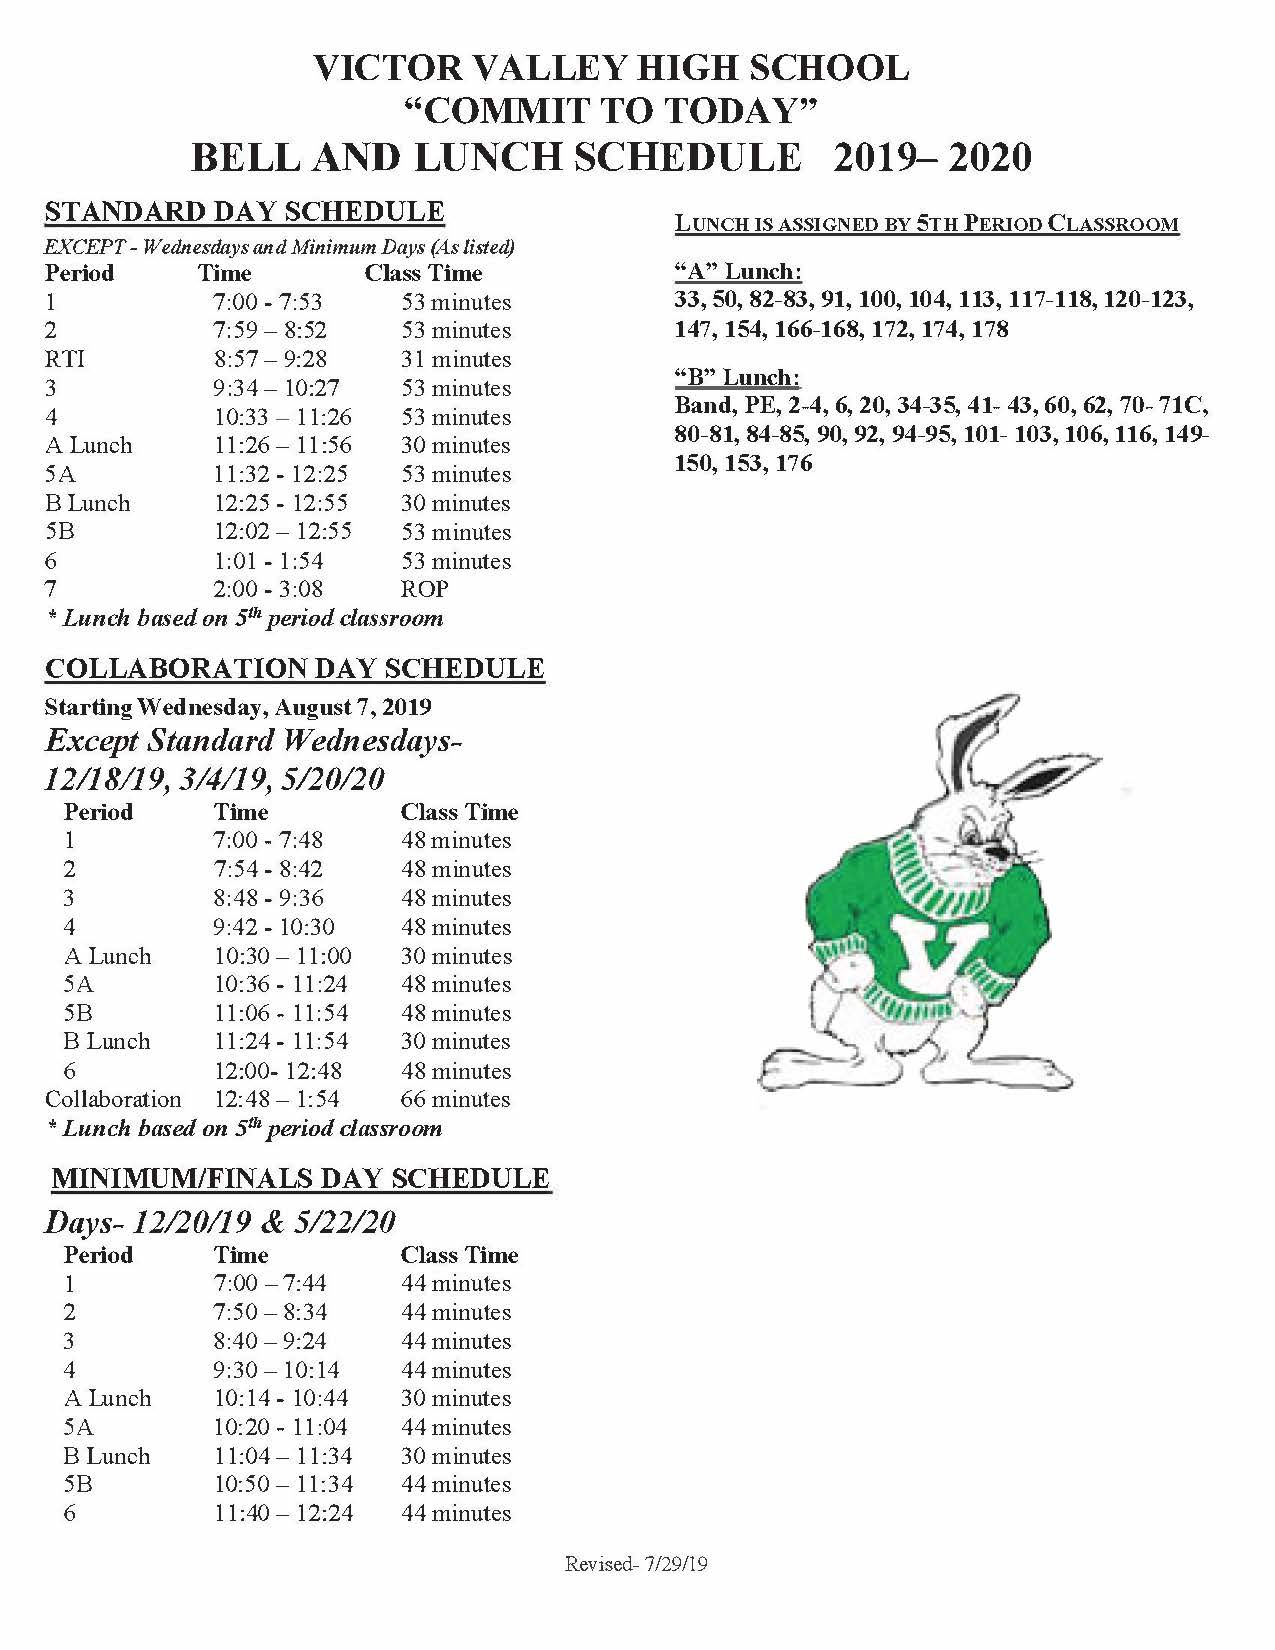 Bell Schedule 2019 2020 School Year - Victor Valley High School In Victorville School District Class Schedule